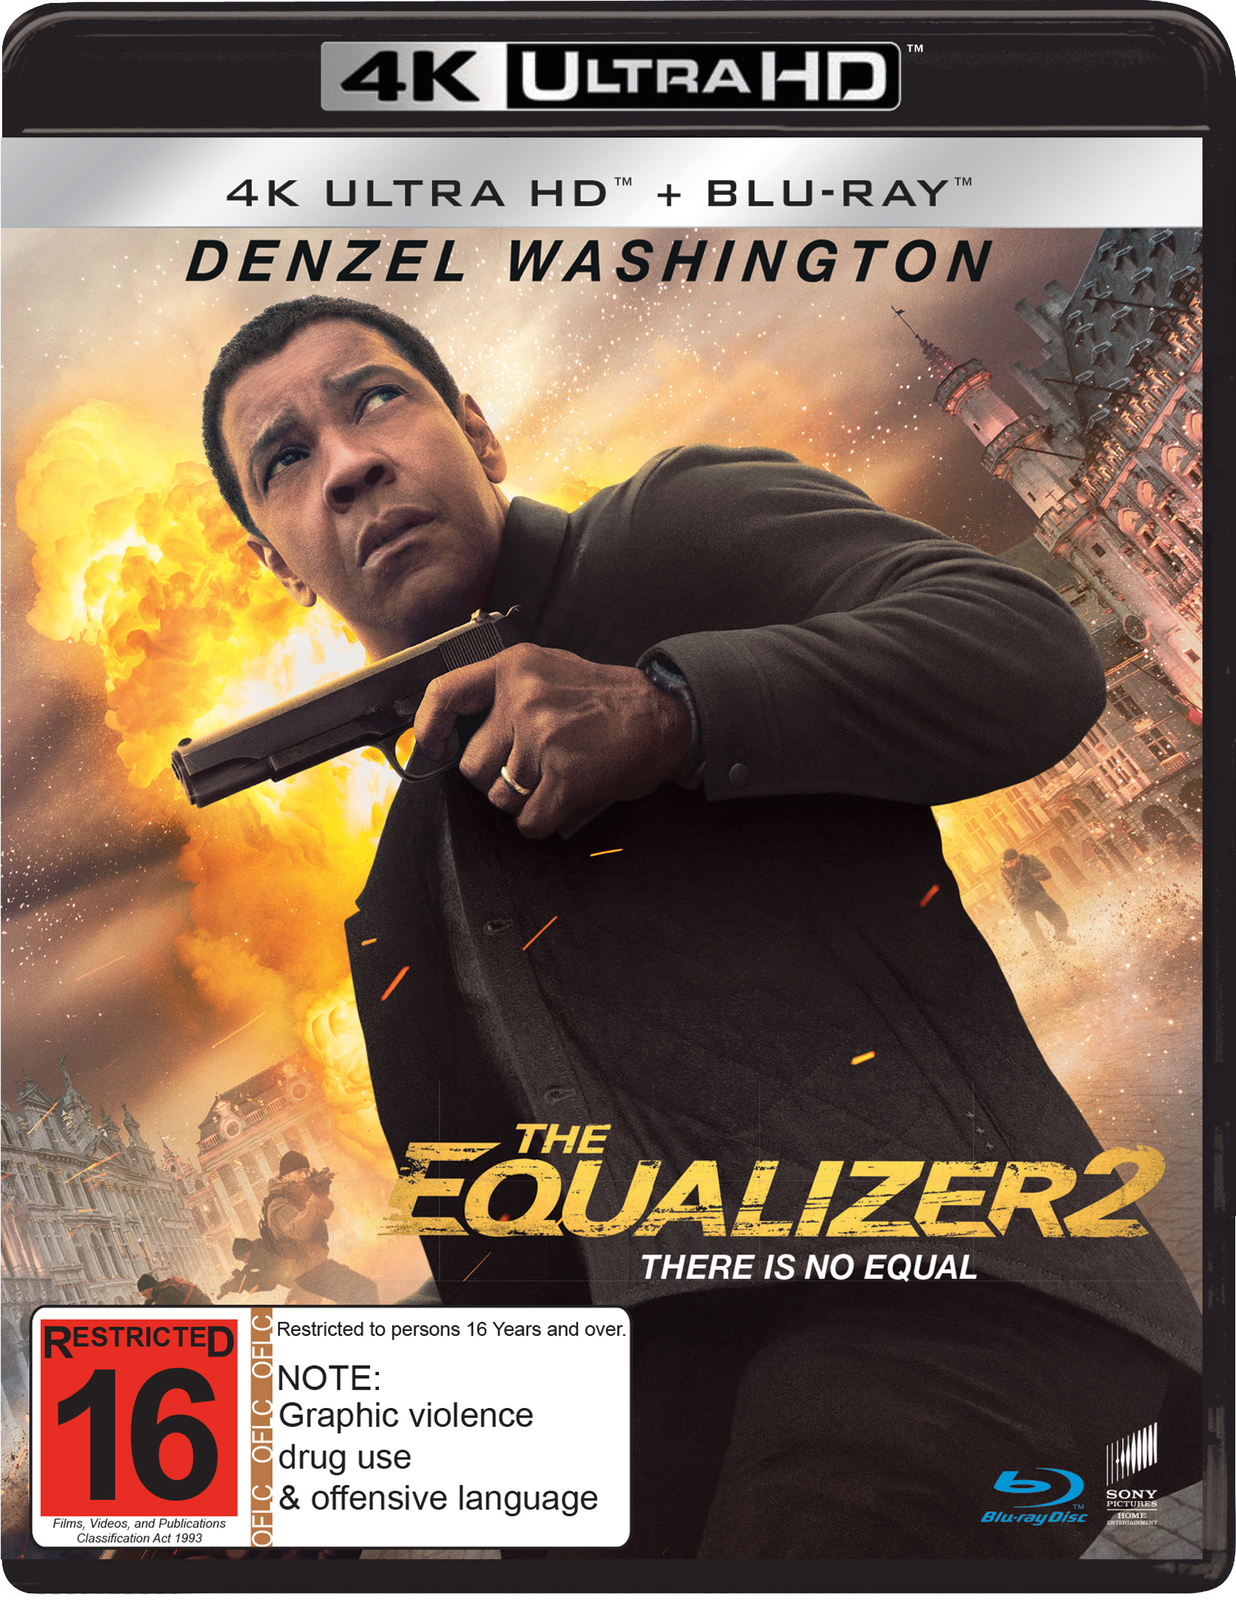 The Equalizer 2 on Blu-ray, UHD Blu-ray image